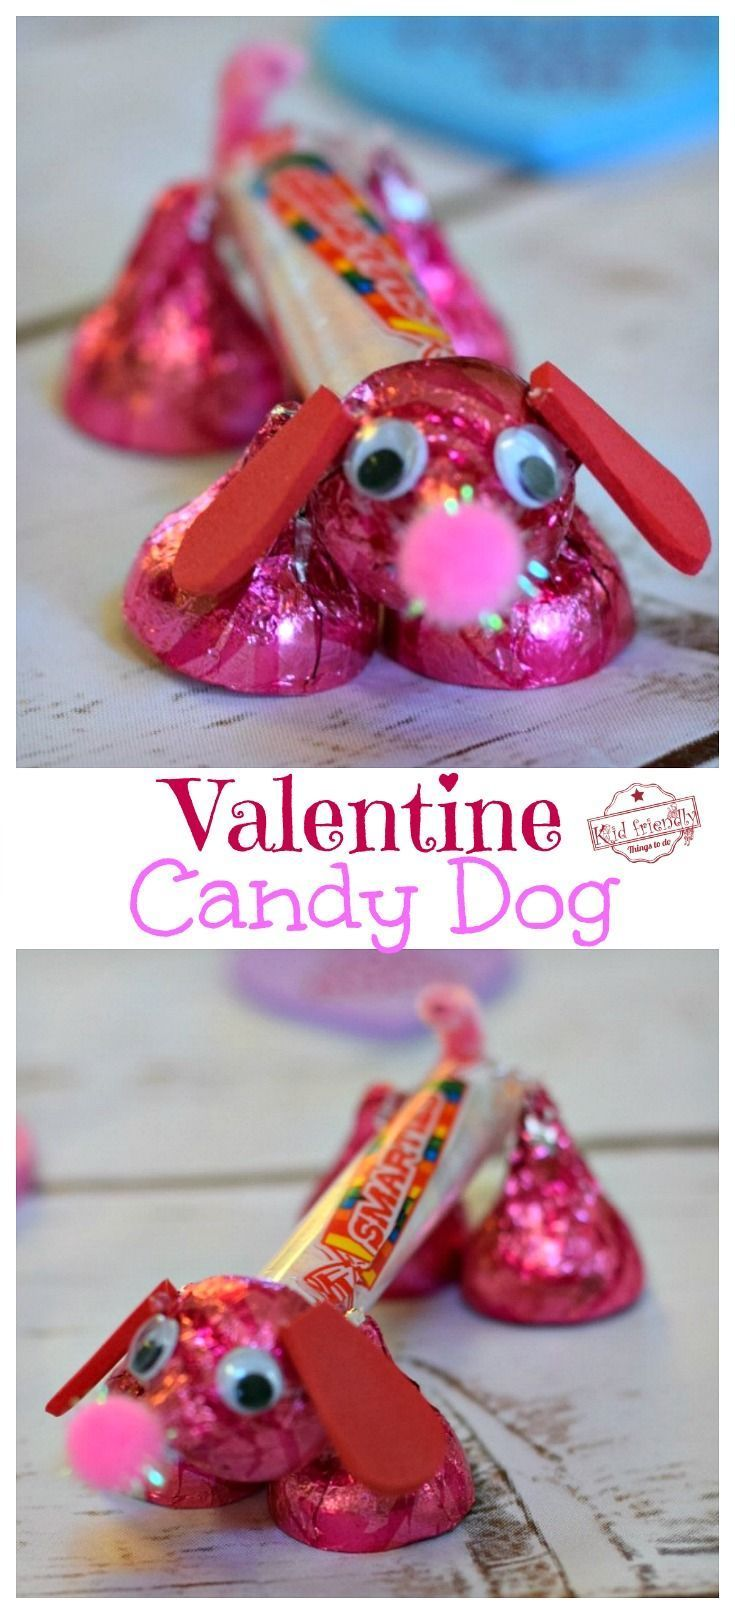 Photo of Make a Candy Dog for a Fun Kid's Valentine's Day Craft and Treat | Kid Friendly Things To Do